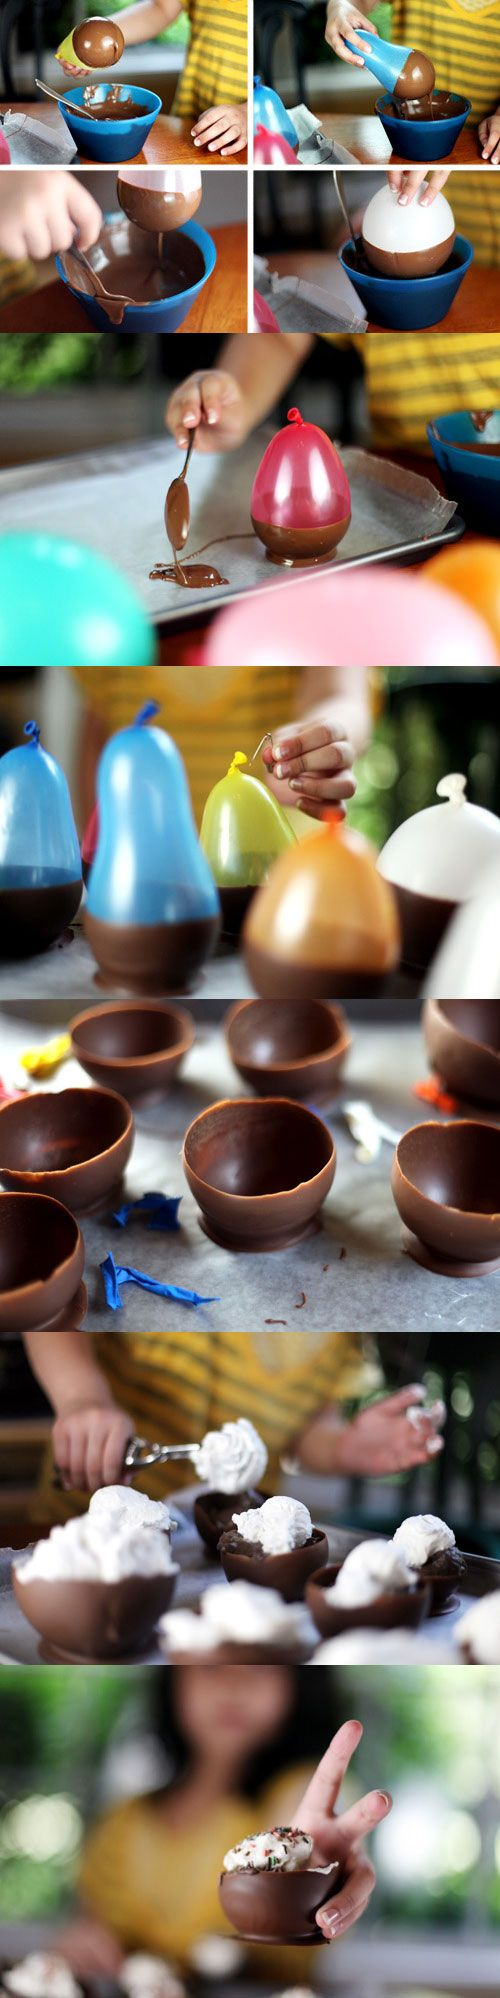 Dip it, burst it, fill it, eat it: Chocolates Bowls Balloon, Chocolates Dips Ideas, Chocolates Cups, Chocolates Balloon Bowls, Cool Desserts Ideas, Balloon Ideas For Parties, Chocolates Desserts, Chocolates Desert, Chocolates Bowls With Balloon